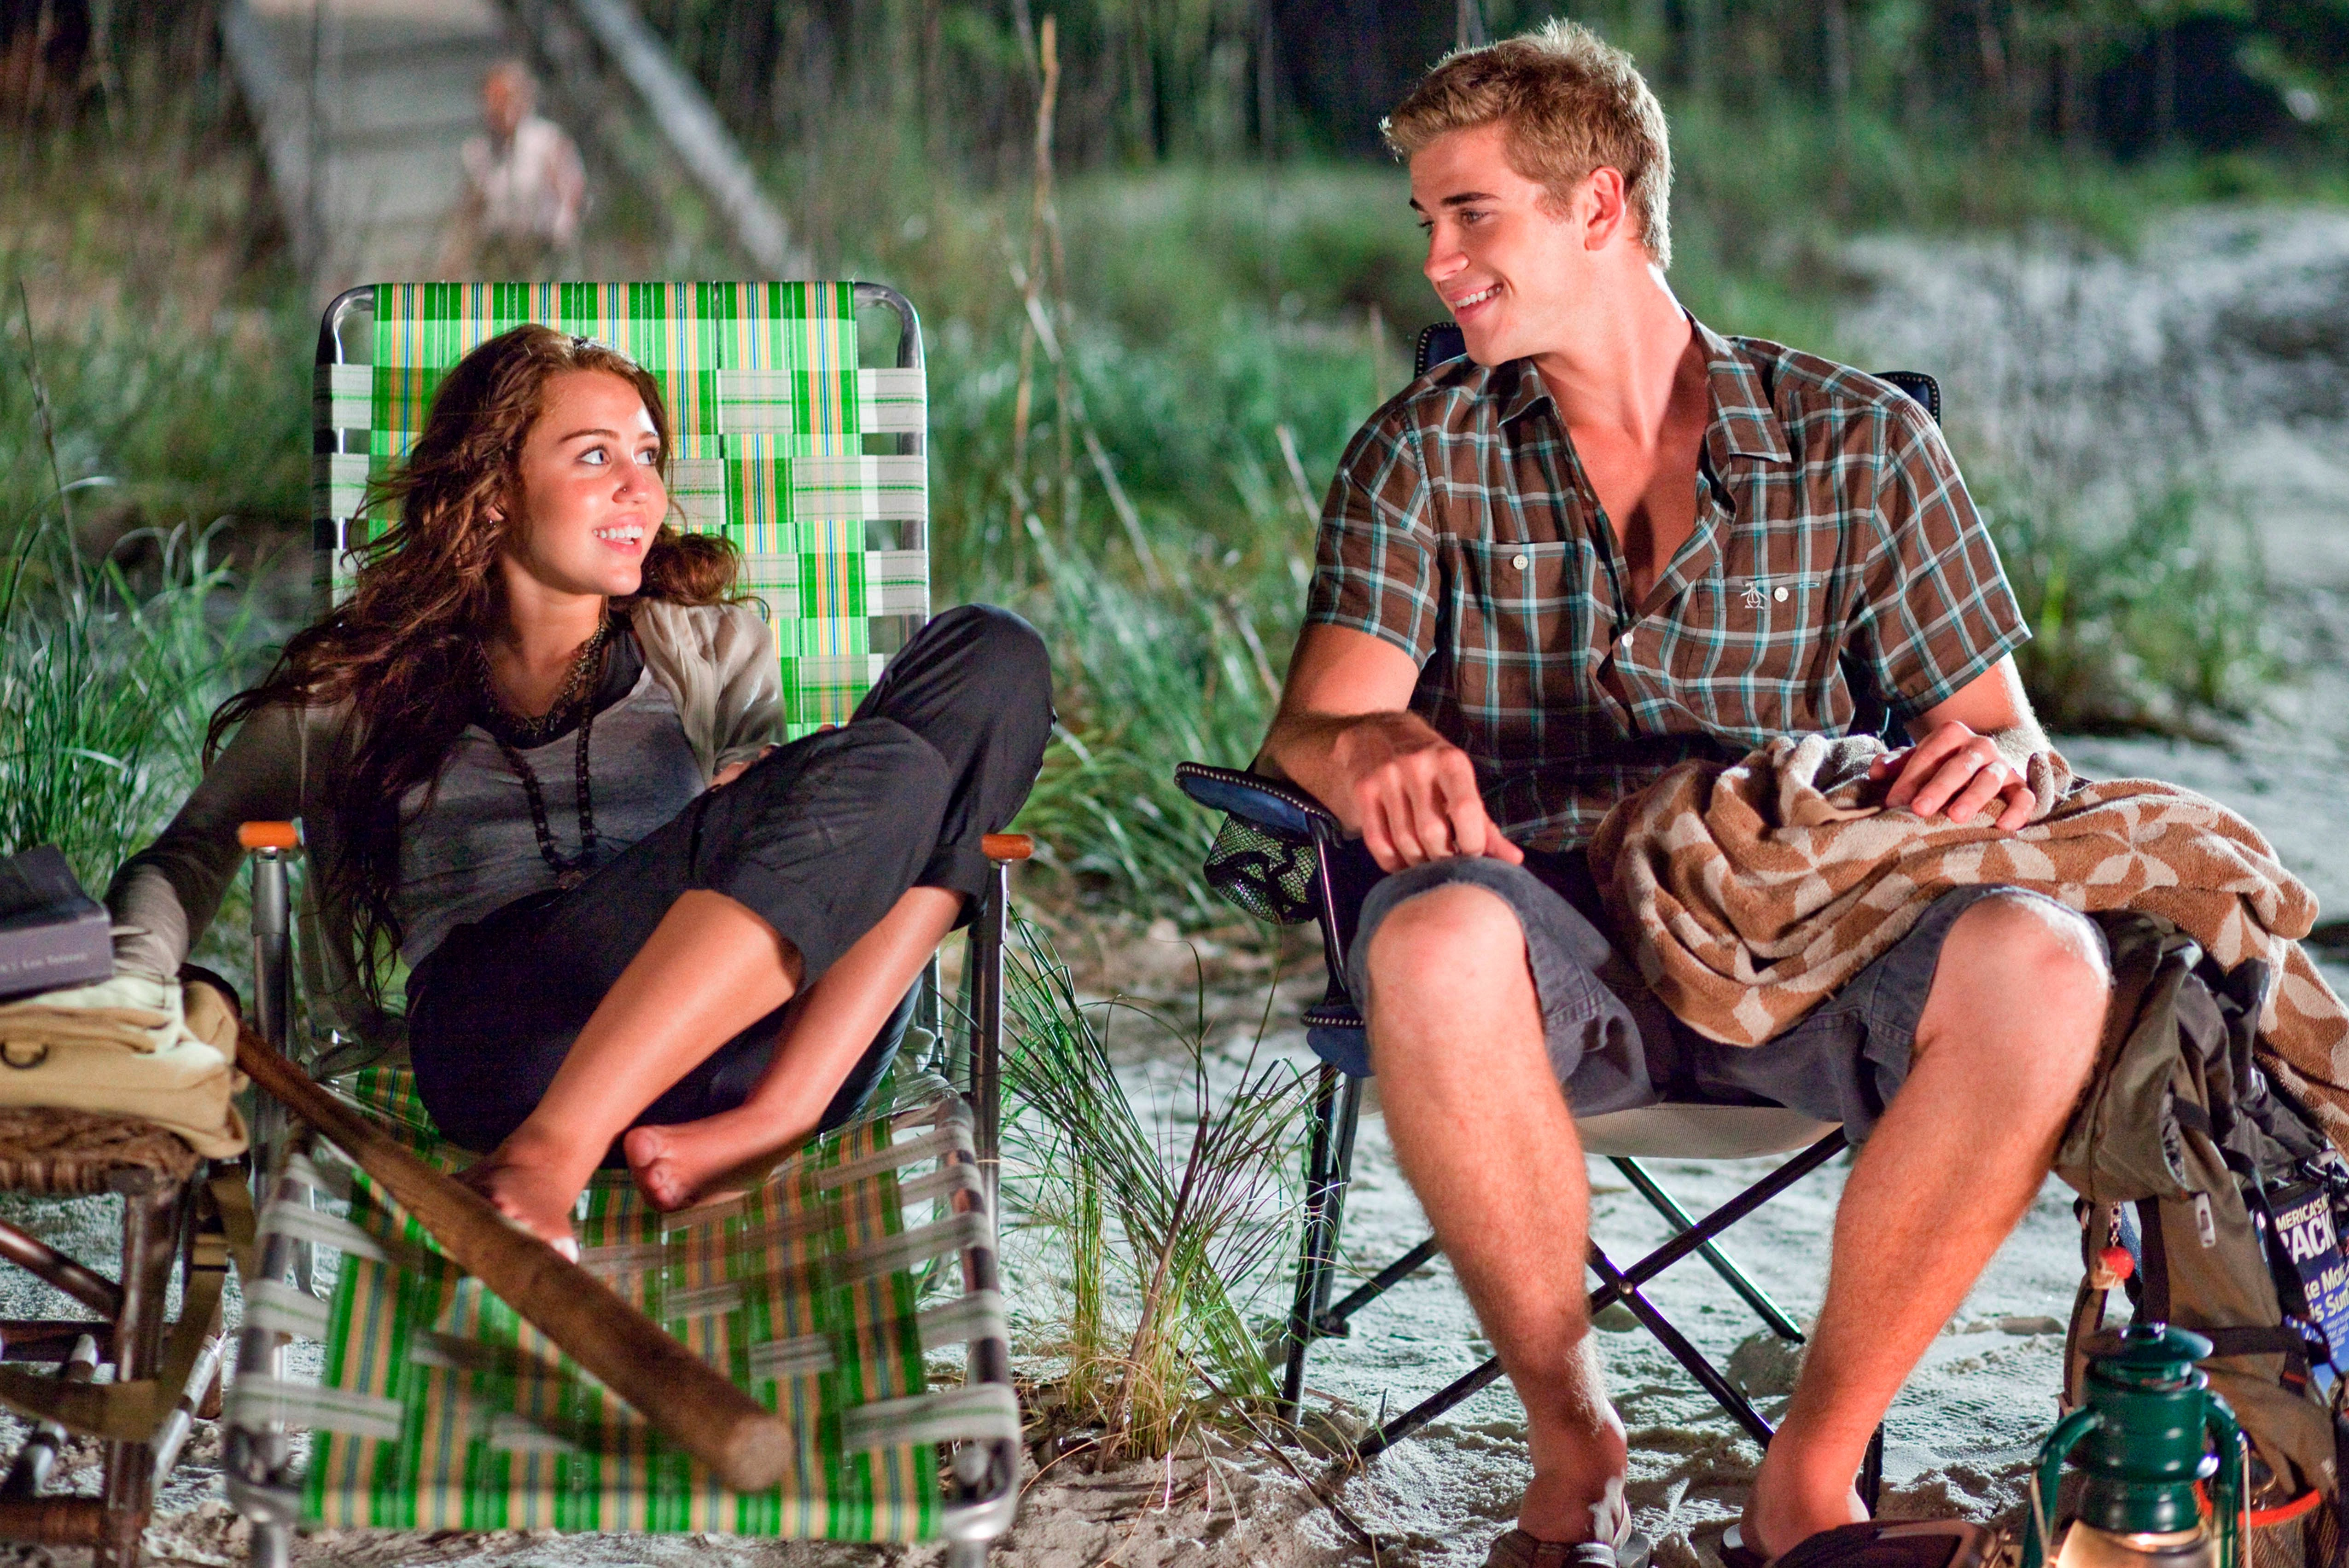 Miley Cyrus, Liam Hemsworth, The Last Song